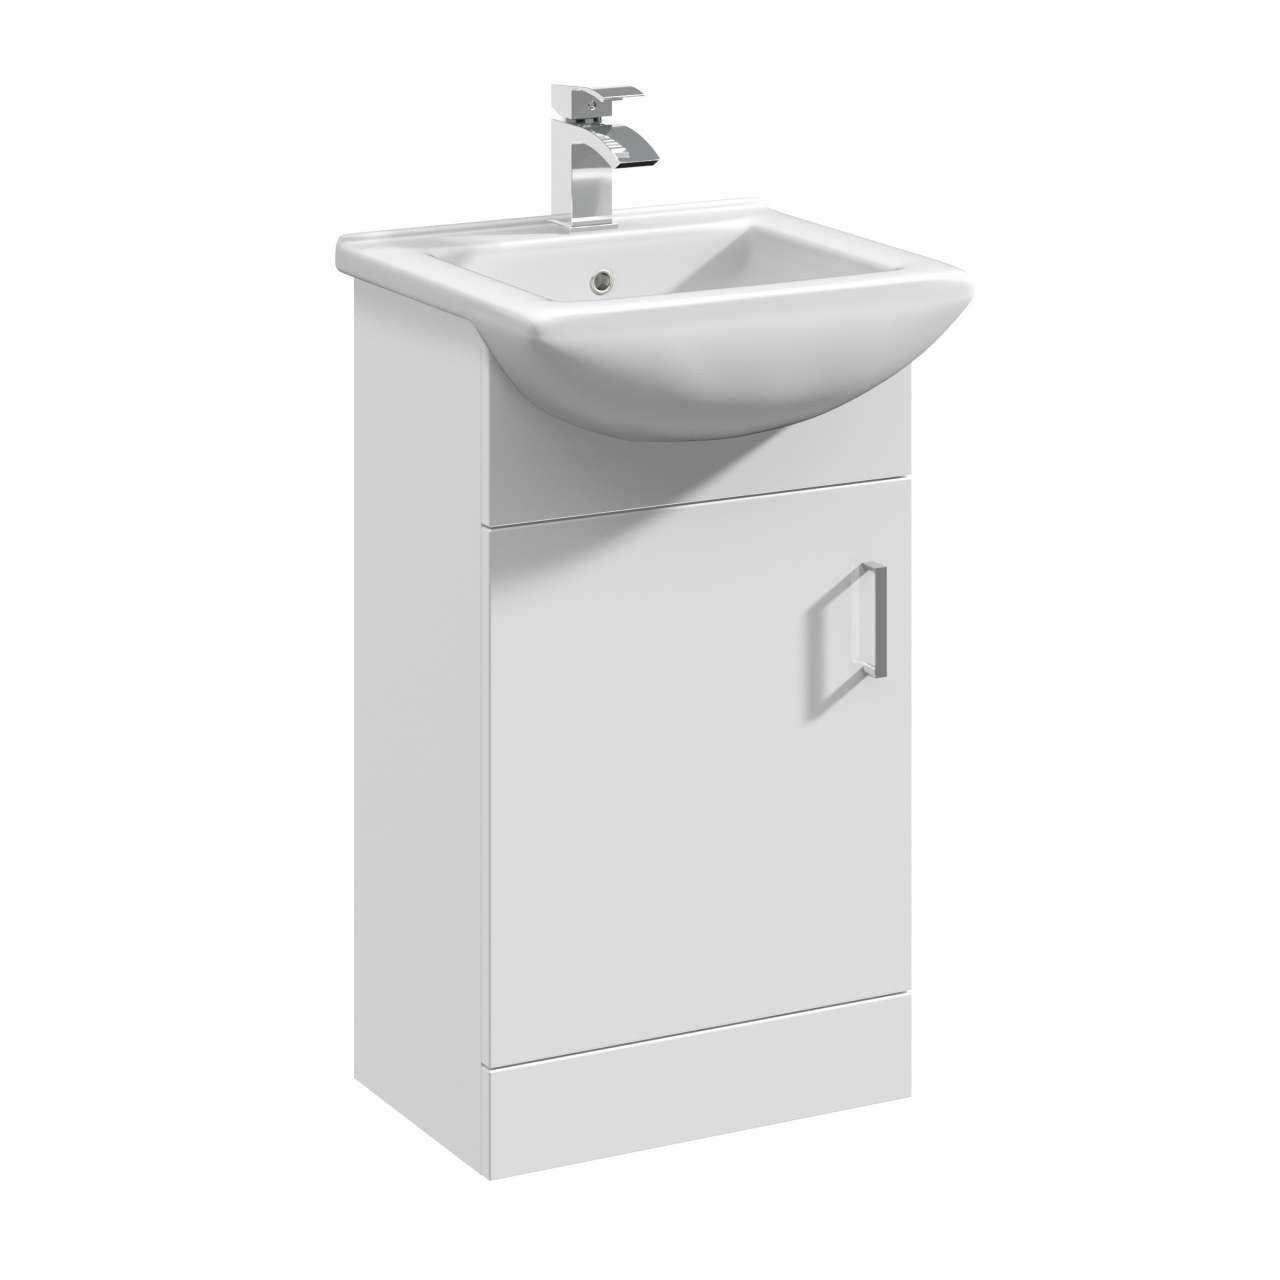 Premier Mayford Gloss White 450mm Vanity Unit and Minimalist Basin with 1 Tap Hole - VTM450